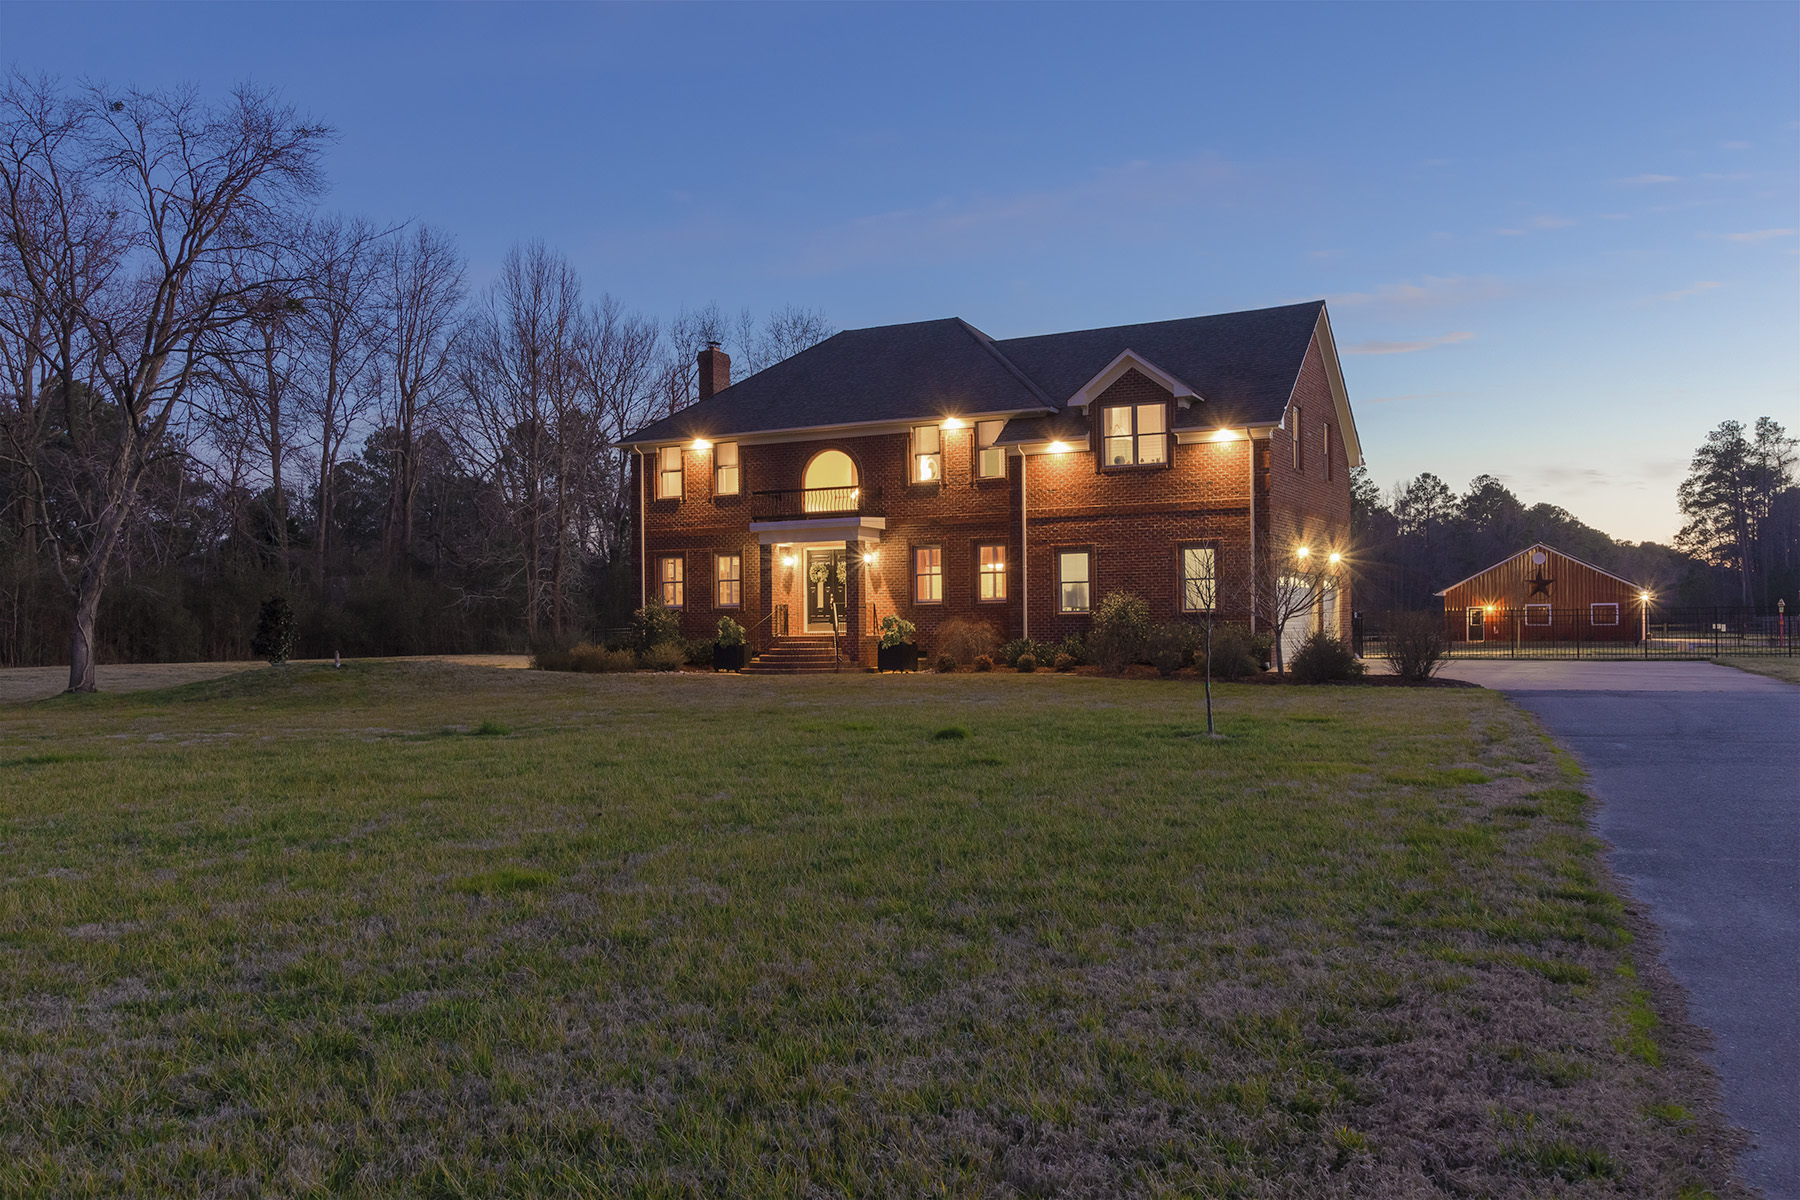 Single Family Home for Sale at Blackwater 628 Blackwater Rd Chesapeake, Virginia 23322 United States